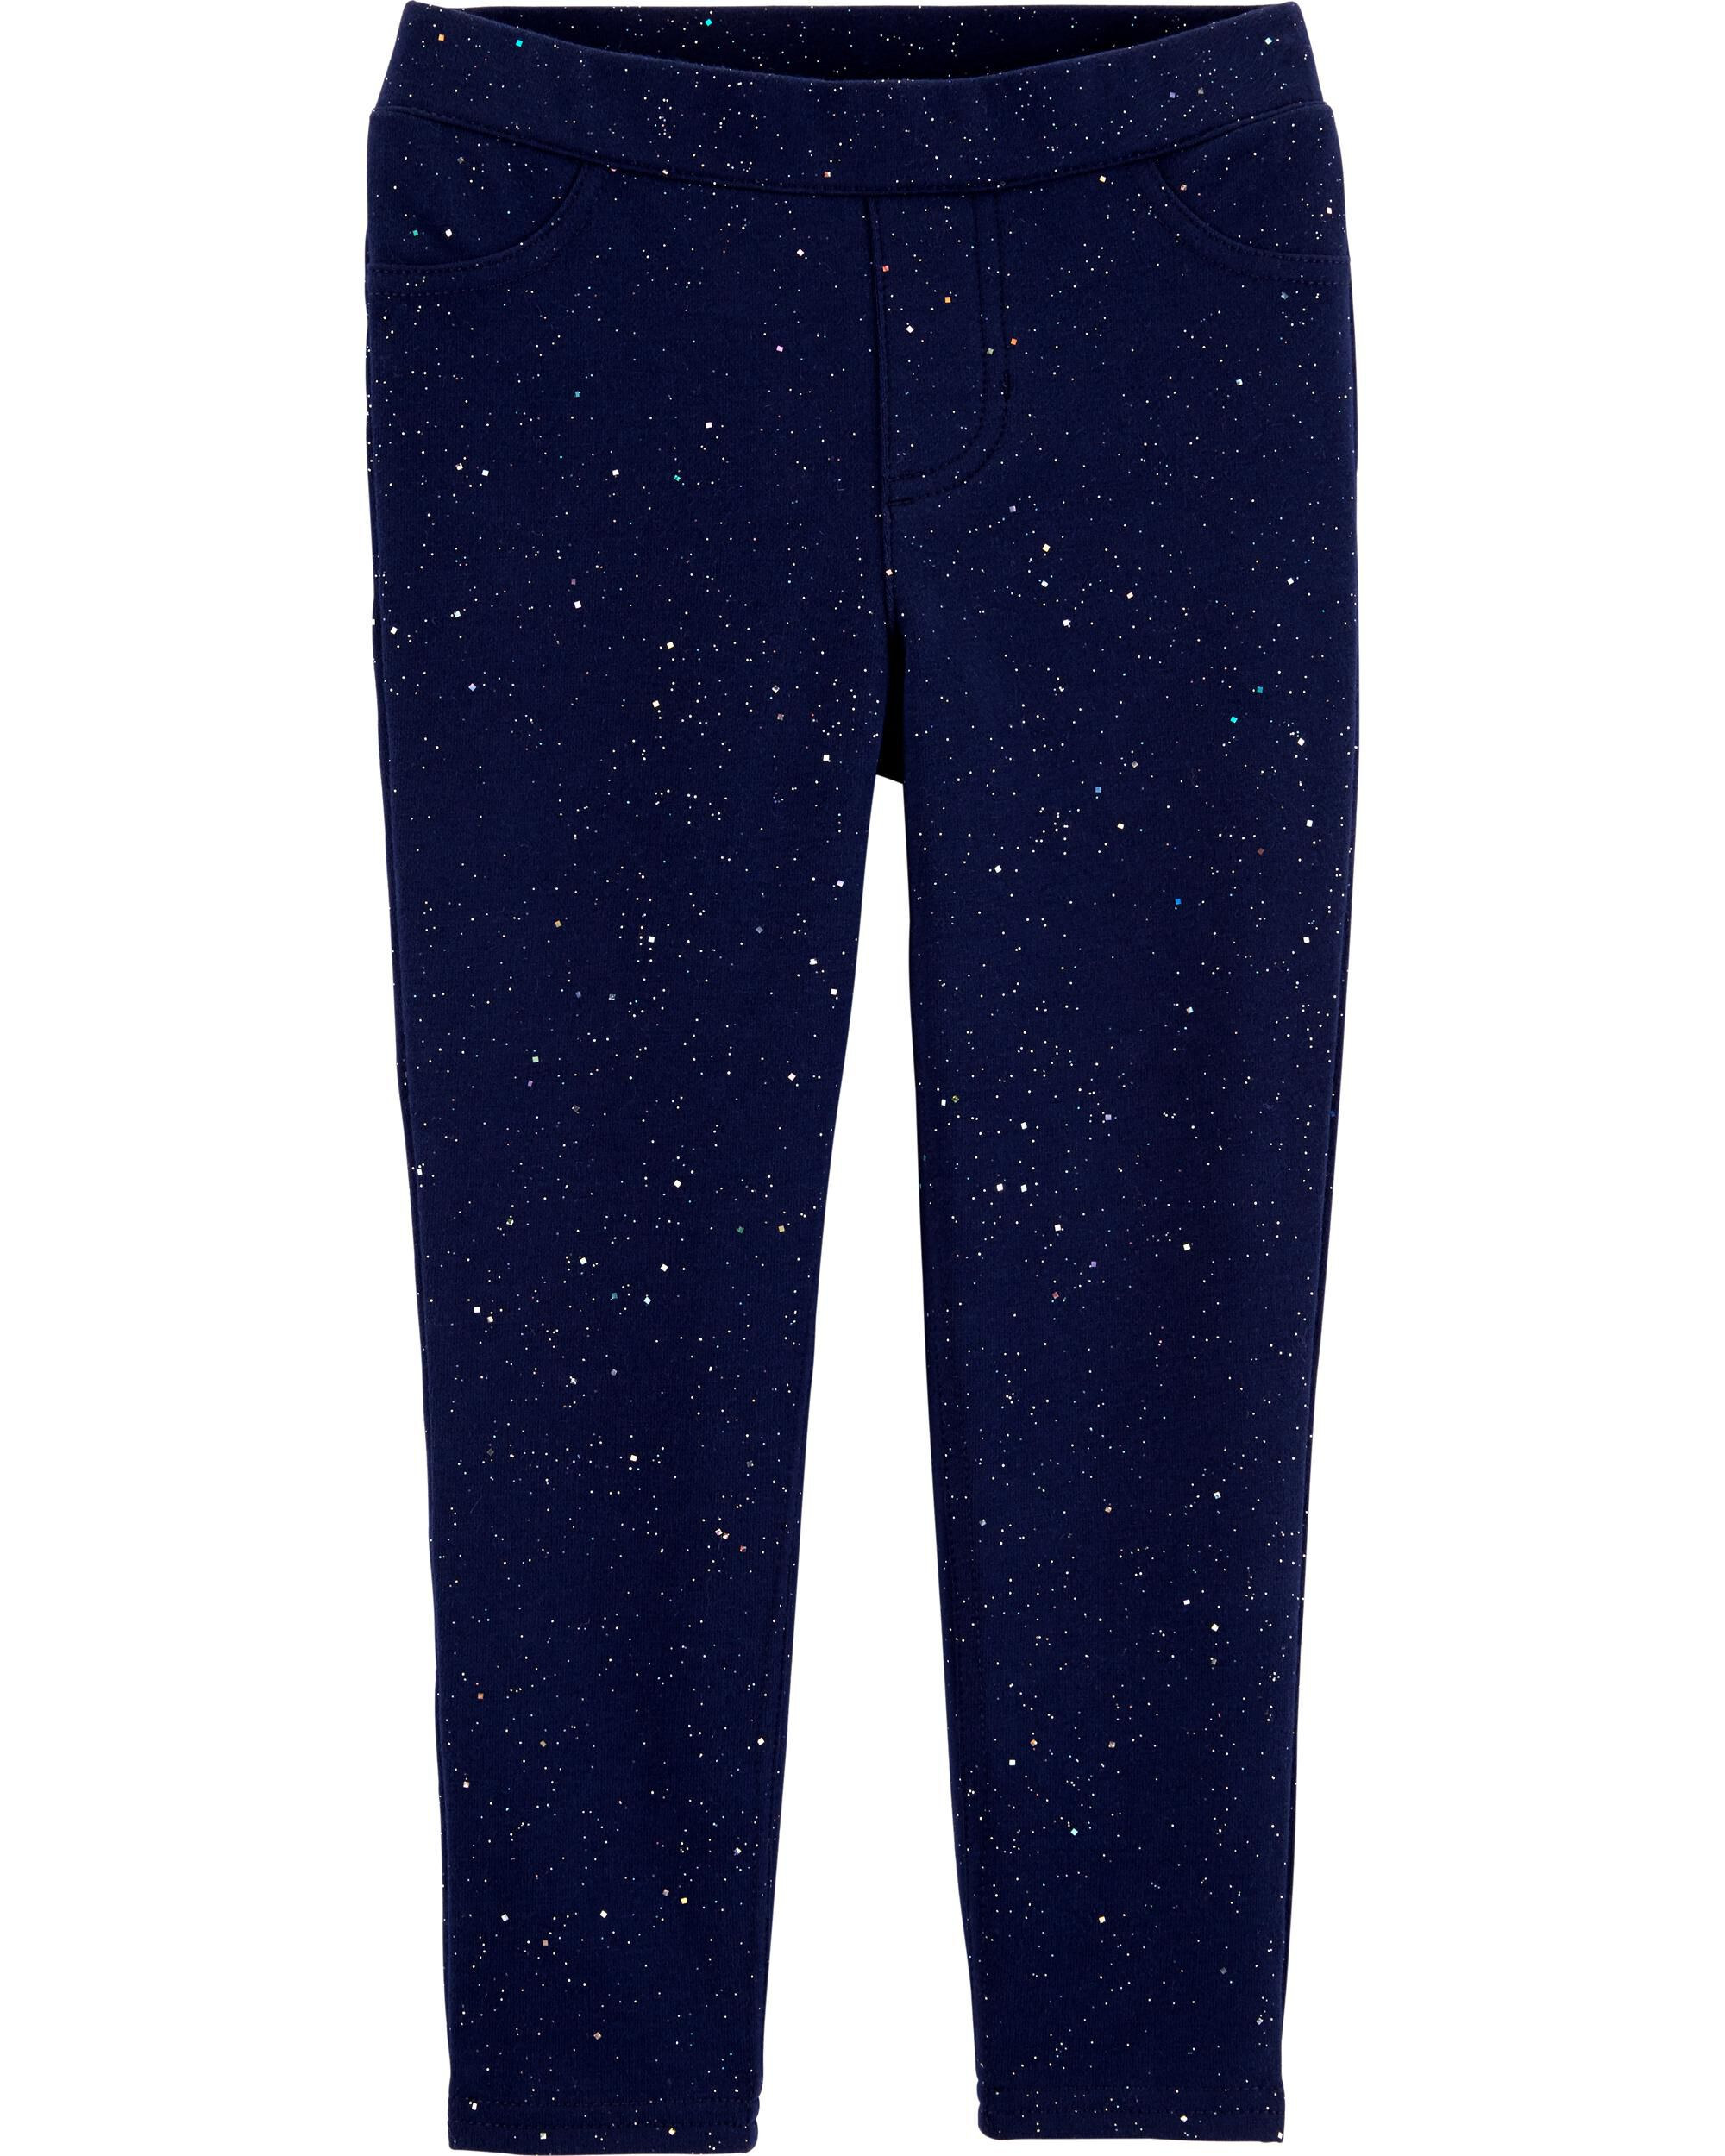 *CLEARANCE* Sparkly Pull-On French Terry Jeggings